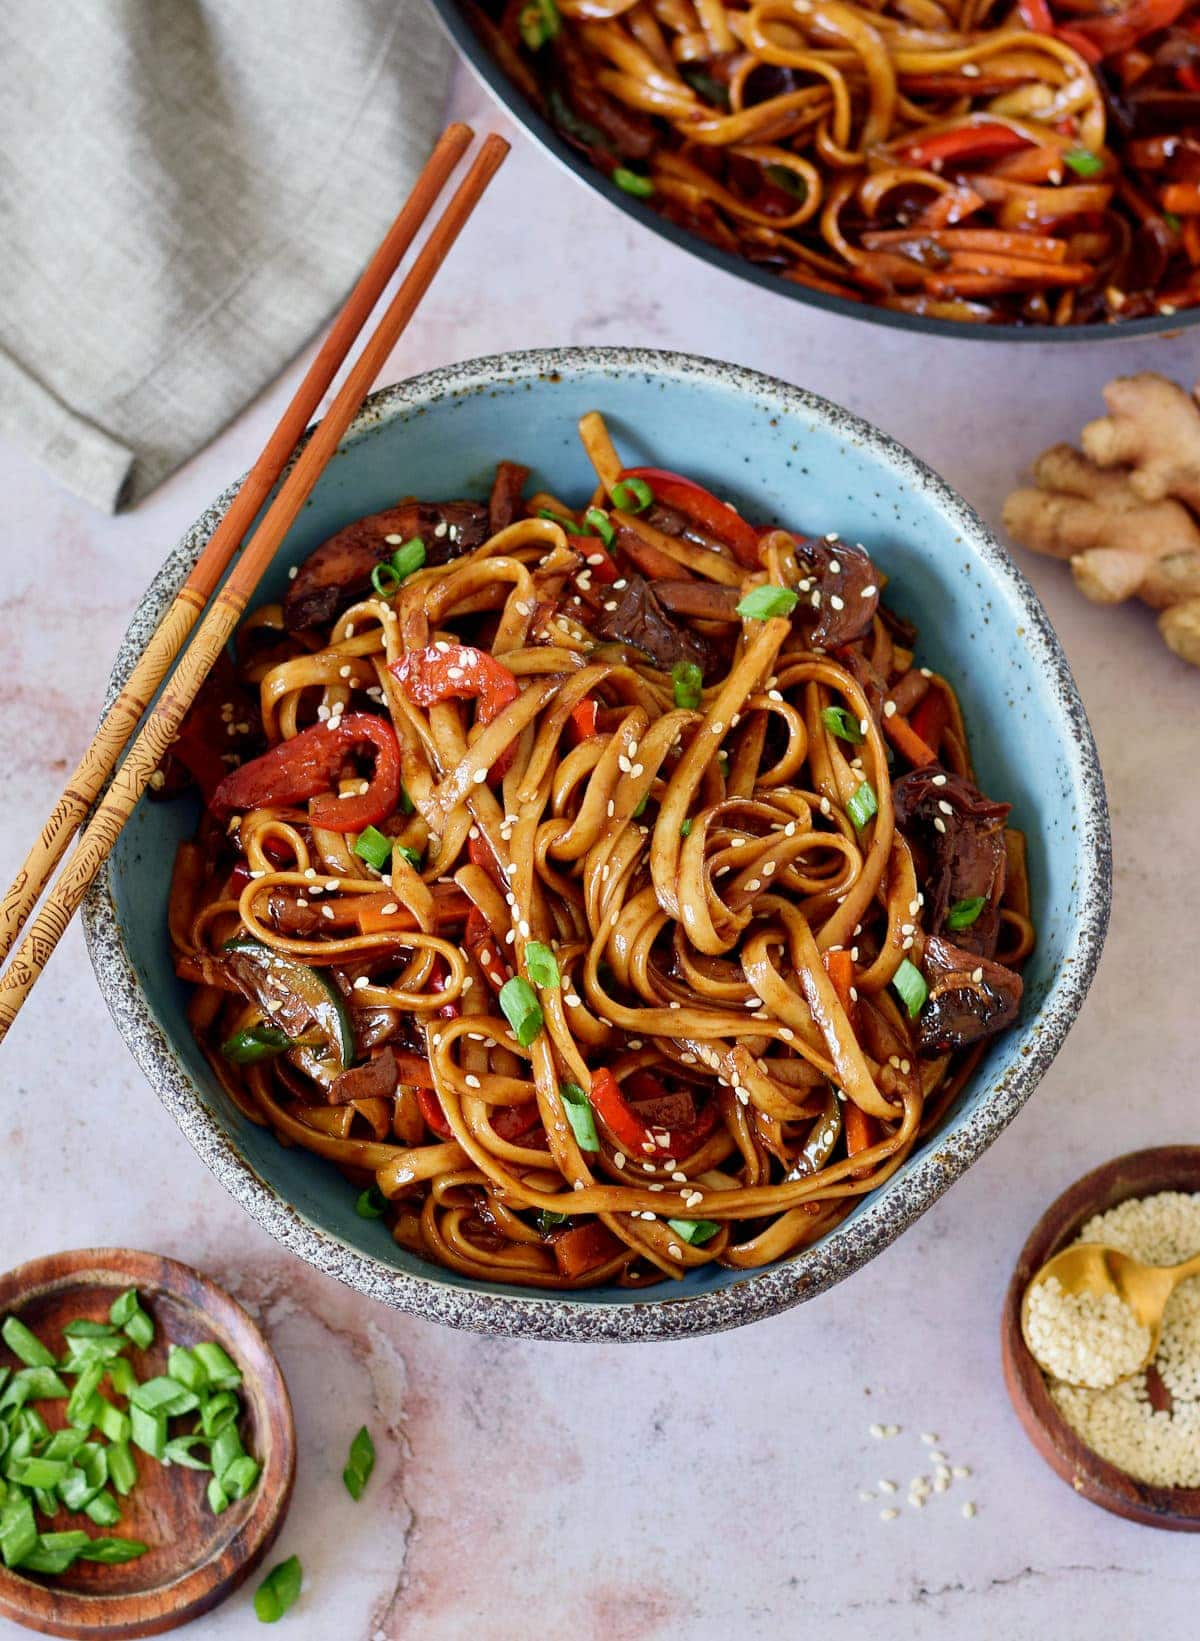 stir-fry noodles with veggies in bowl with chopsticks